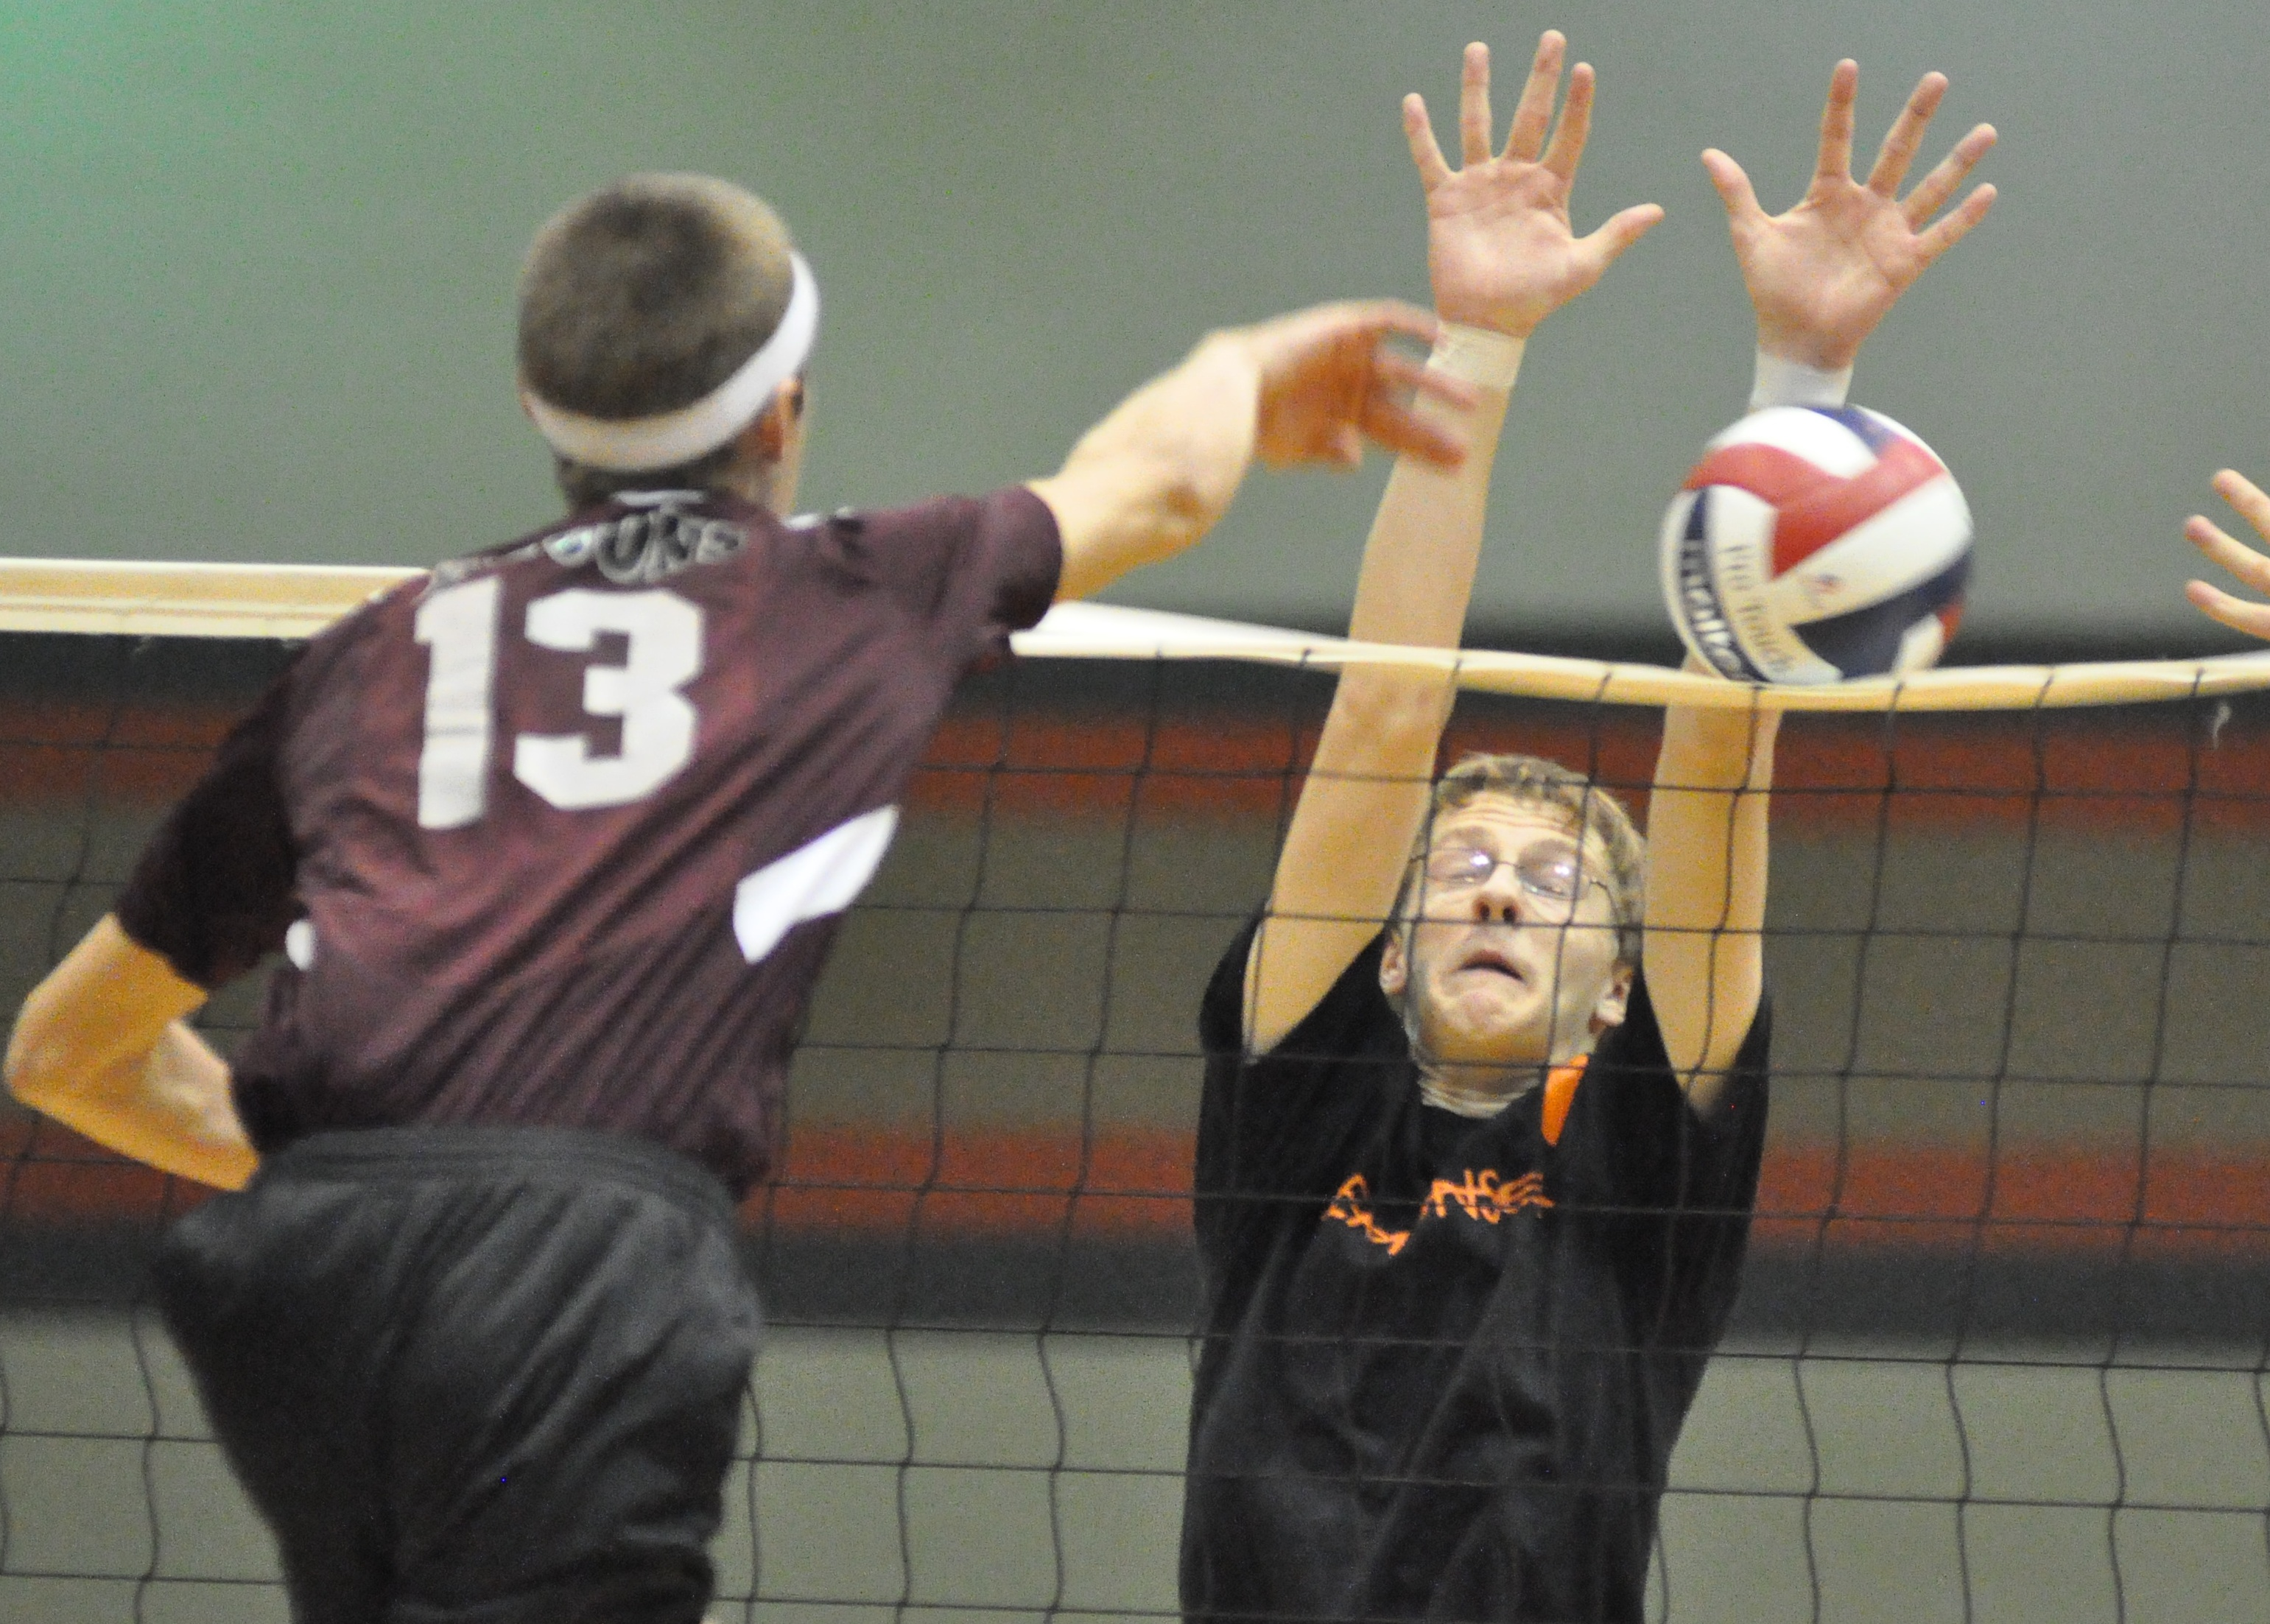 Burlington's Nick Bartlett blocks a spike attempt by a Westosha Central player during Thursday's sectional match at BHS. (Photo by Ed Nadolski)